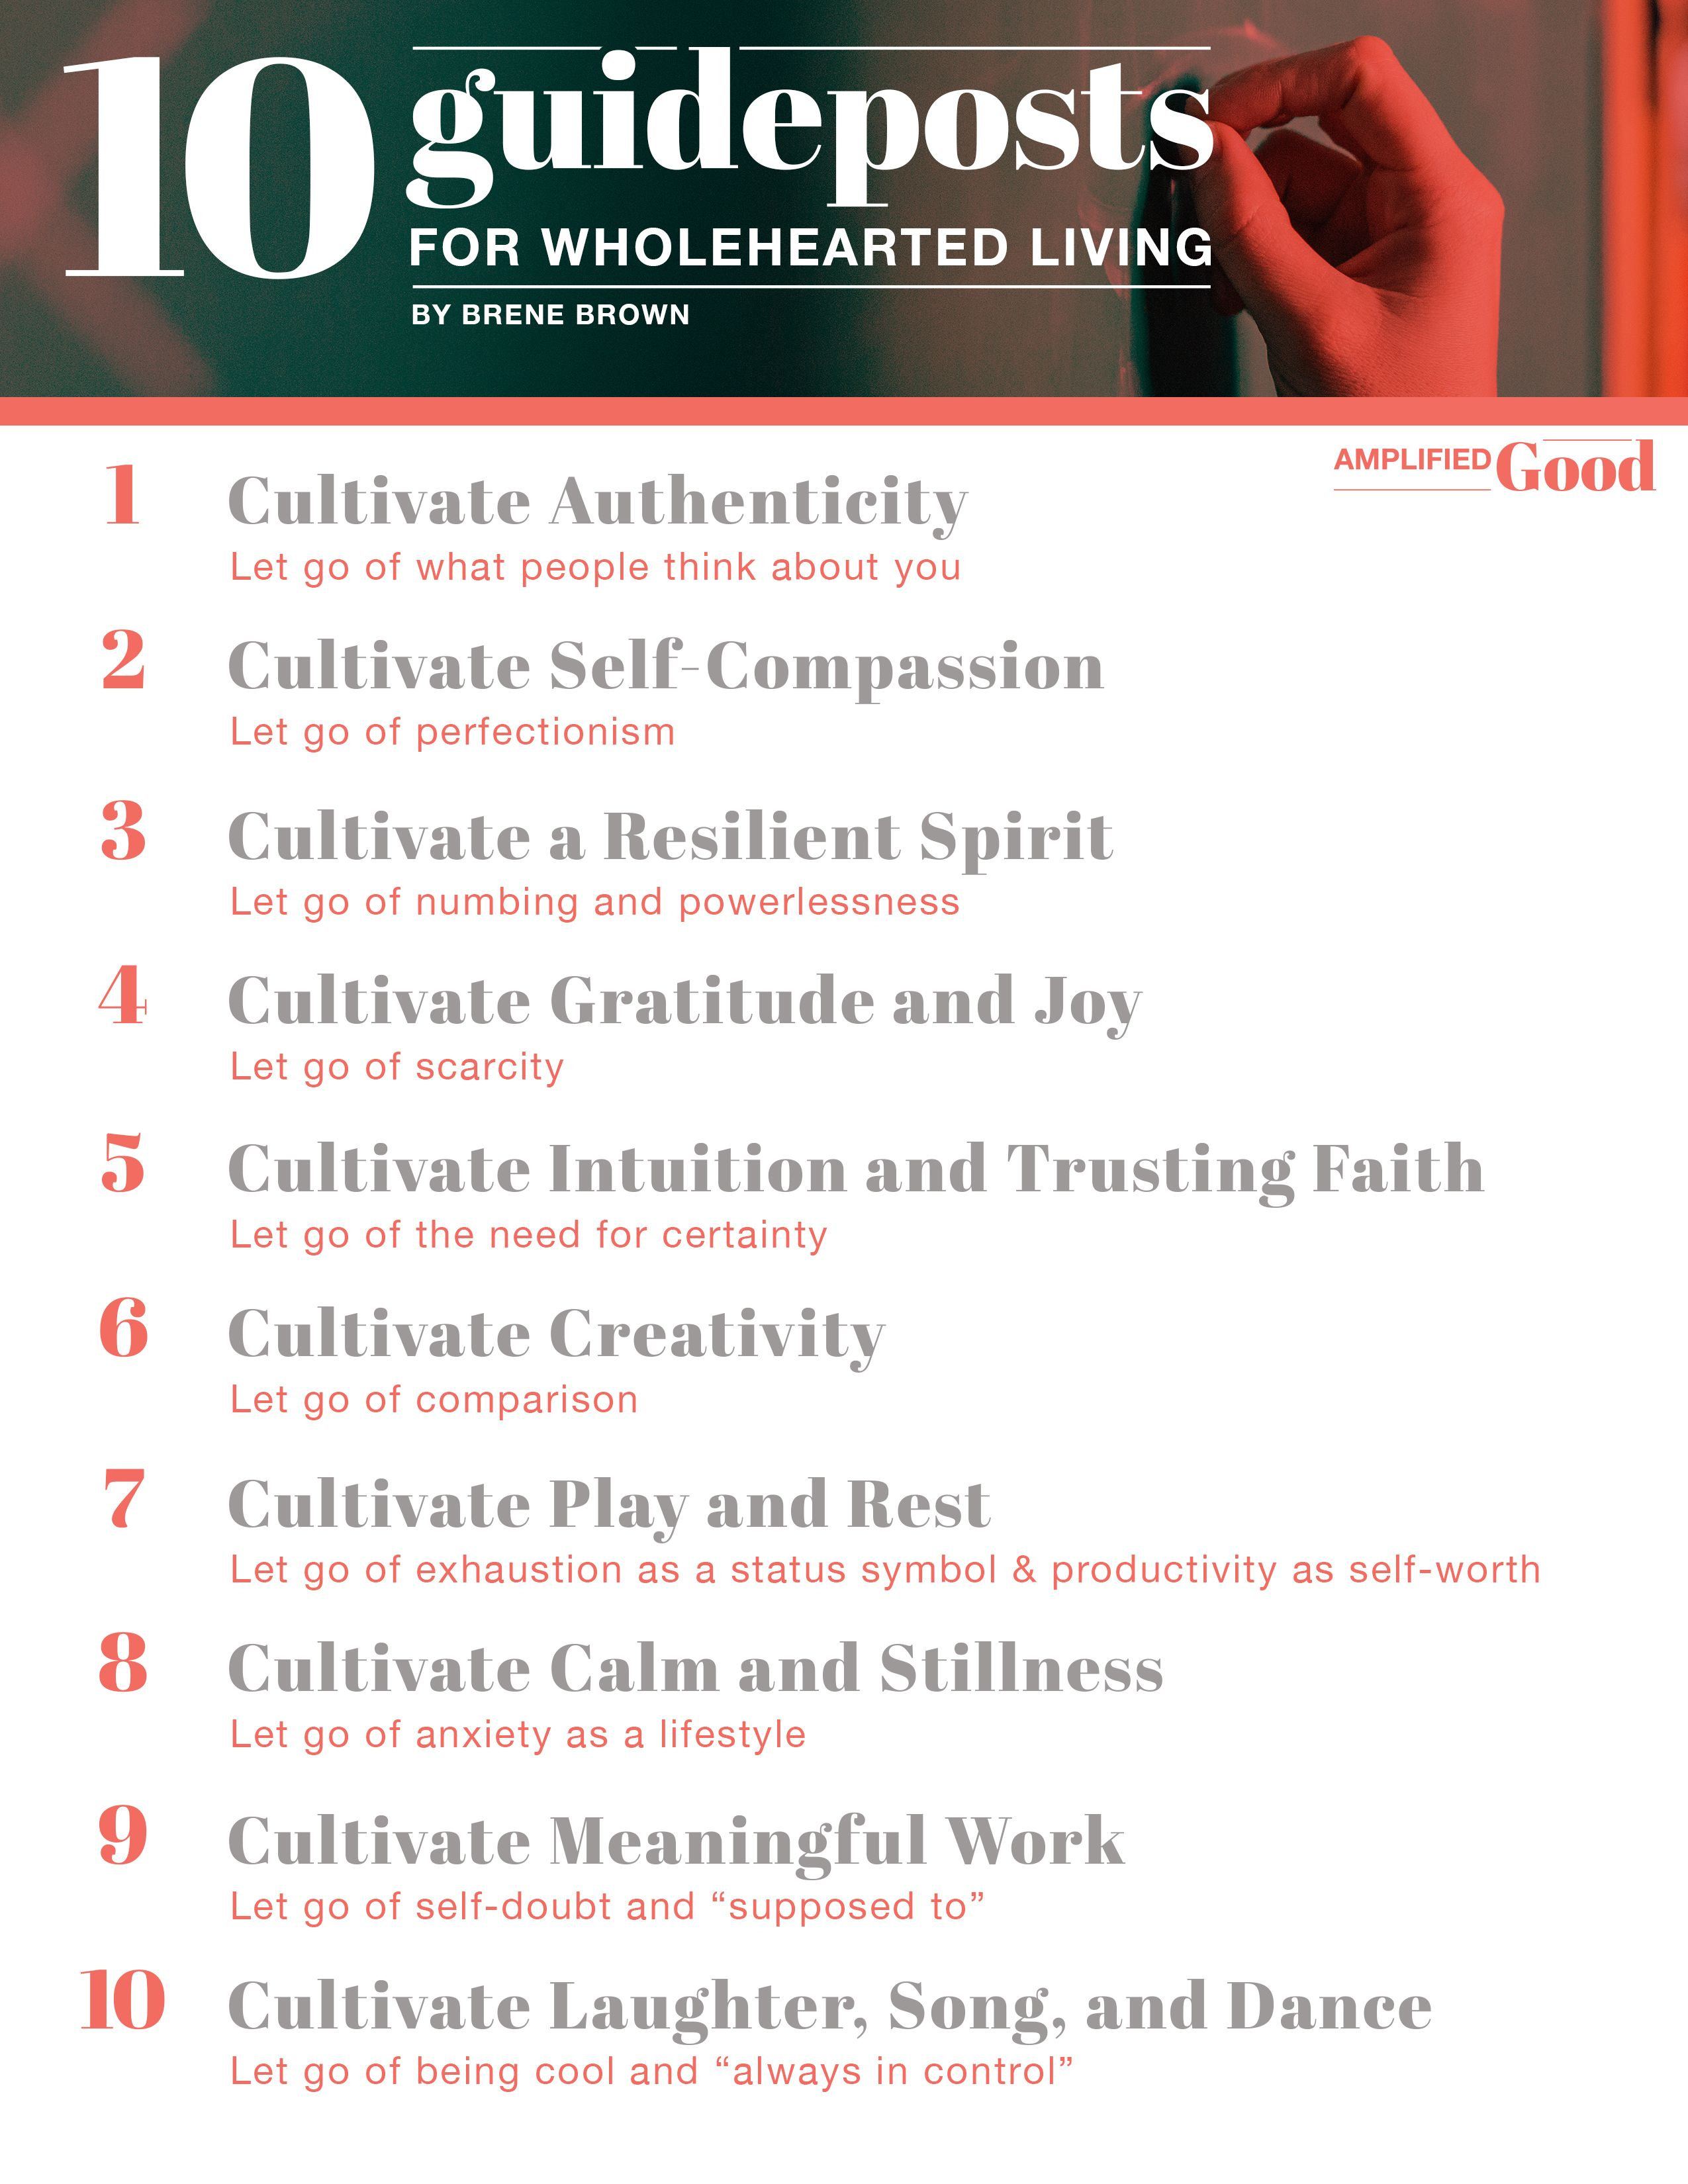 10 Guideposts For Wholehearted Living Worksheet